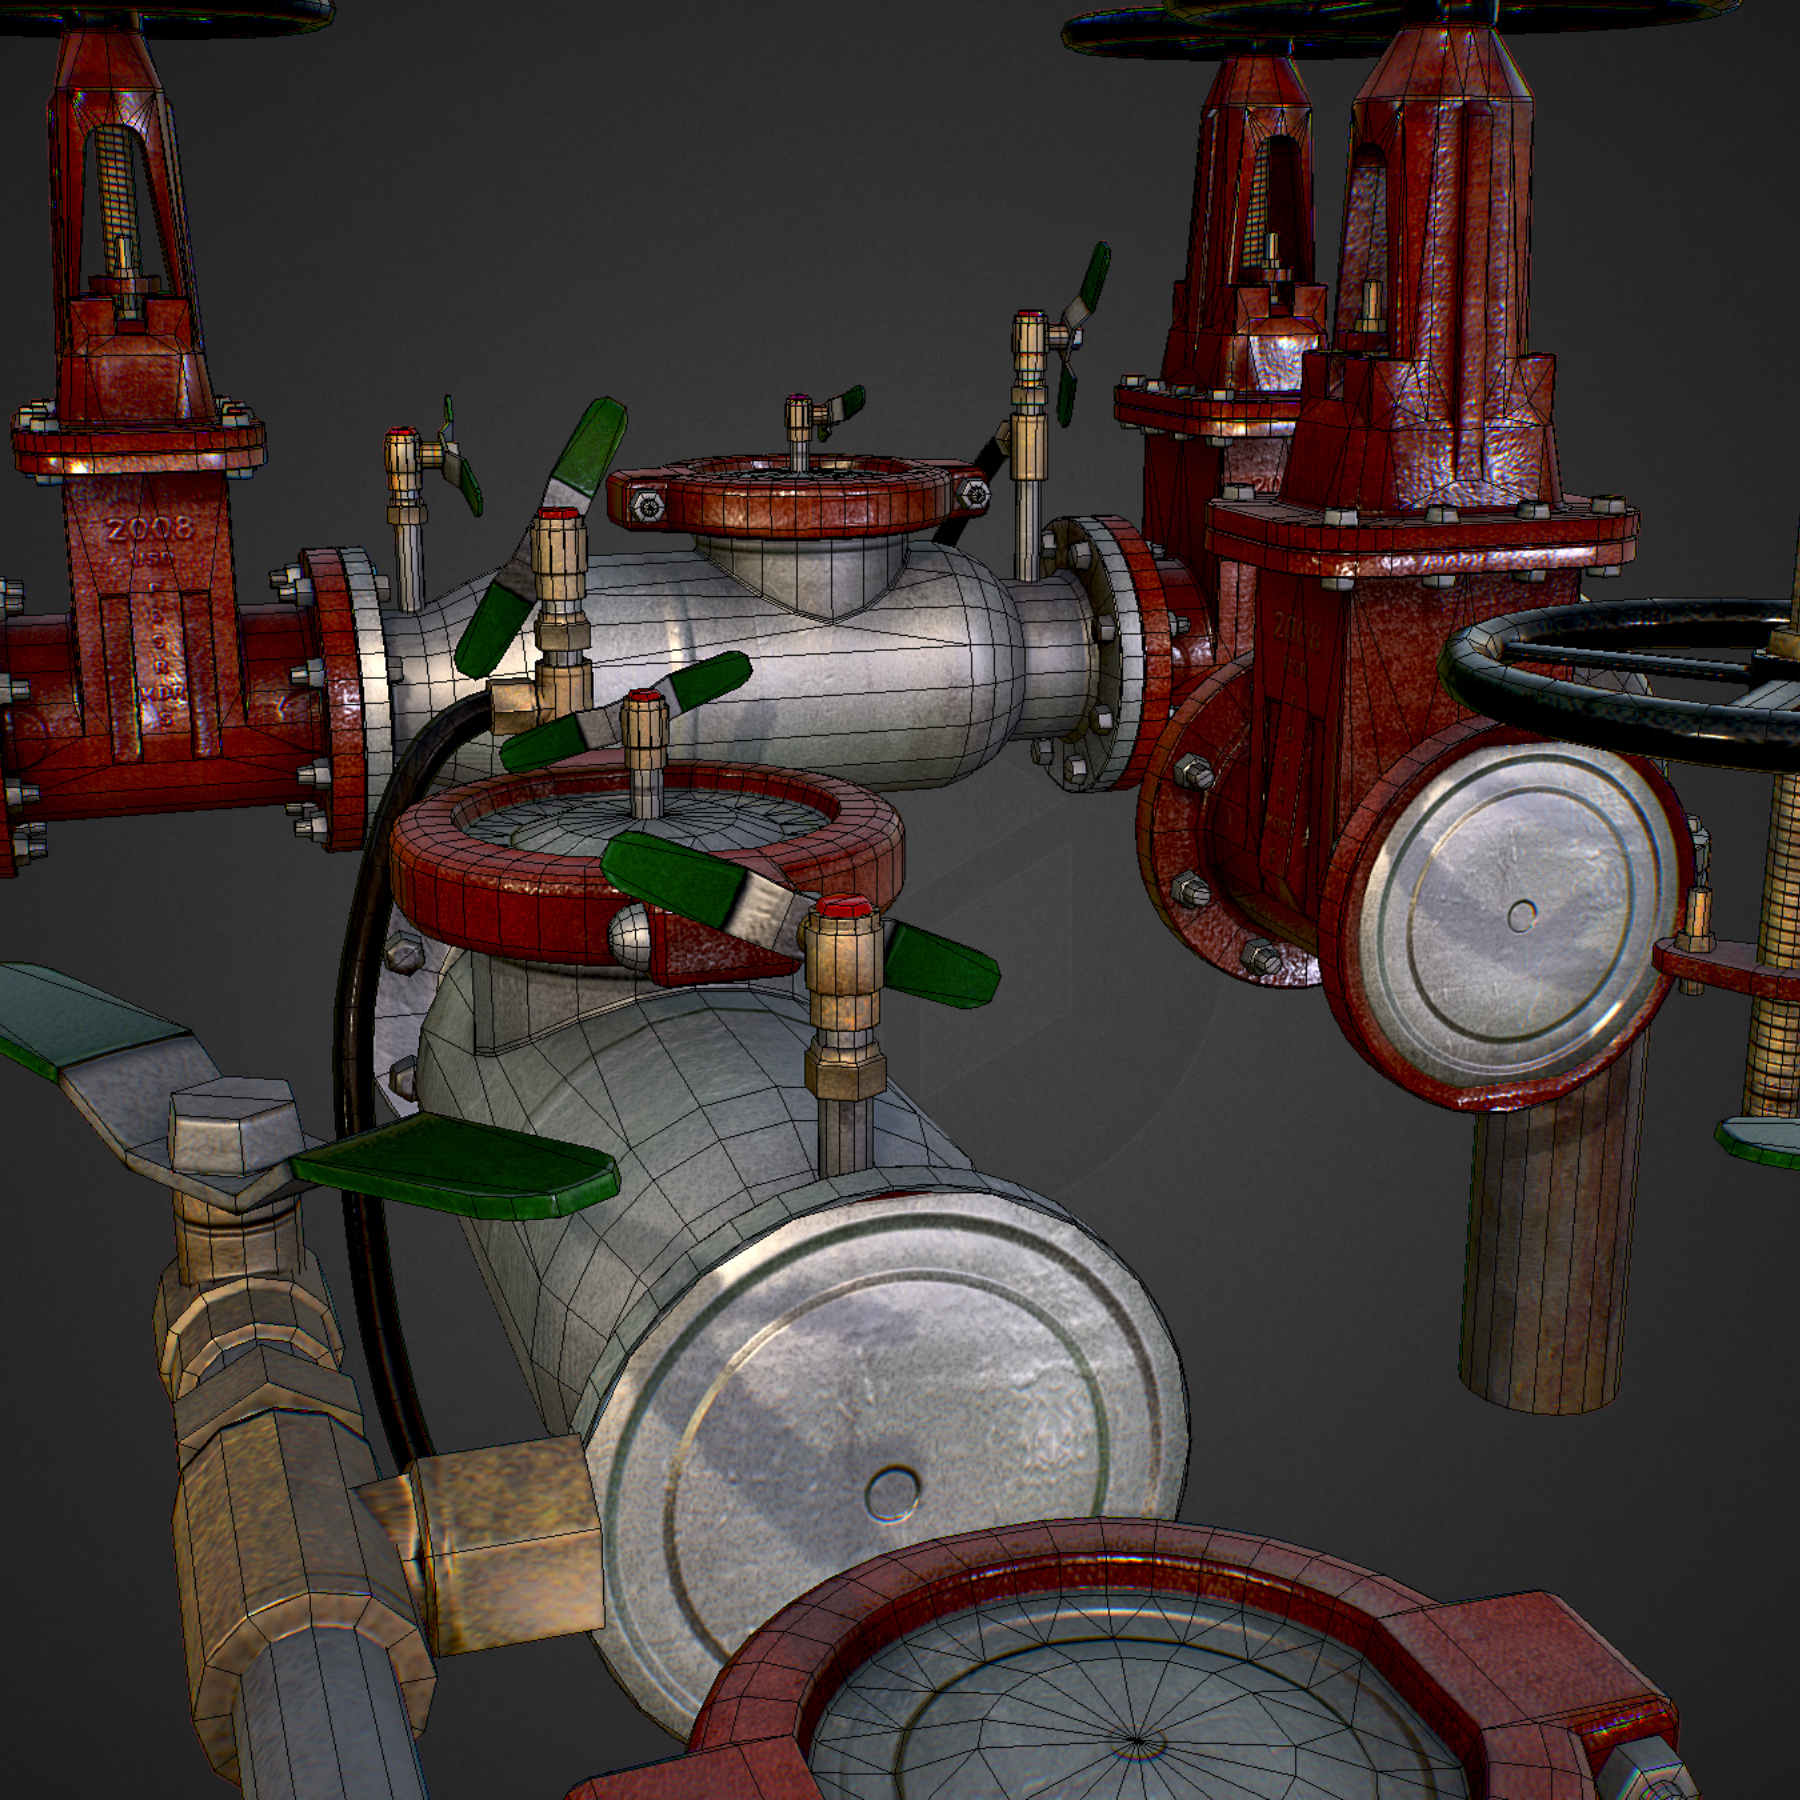 low poly game backflow water pipe constructor 3d model max  fbx ma mb tga targa icb vda vst pix obj 272493